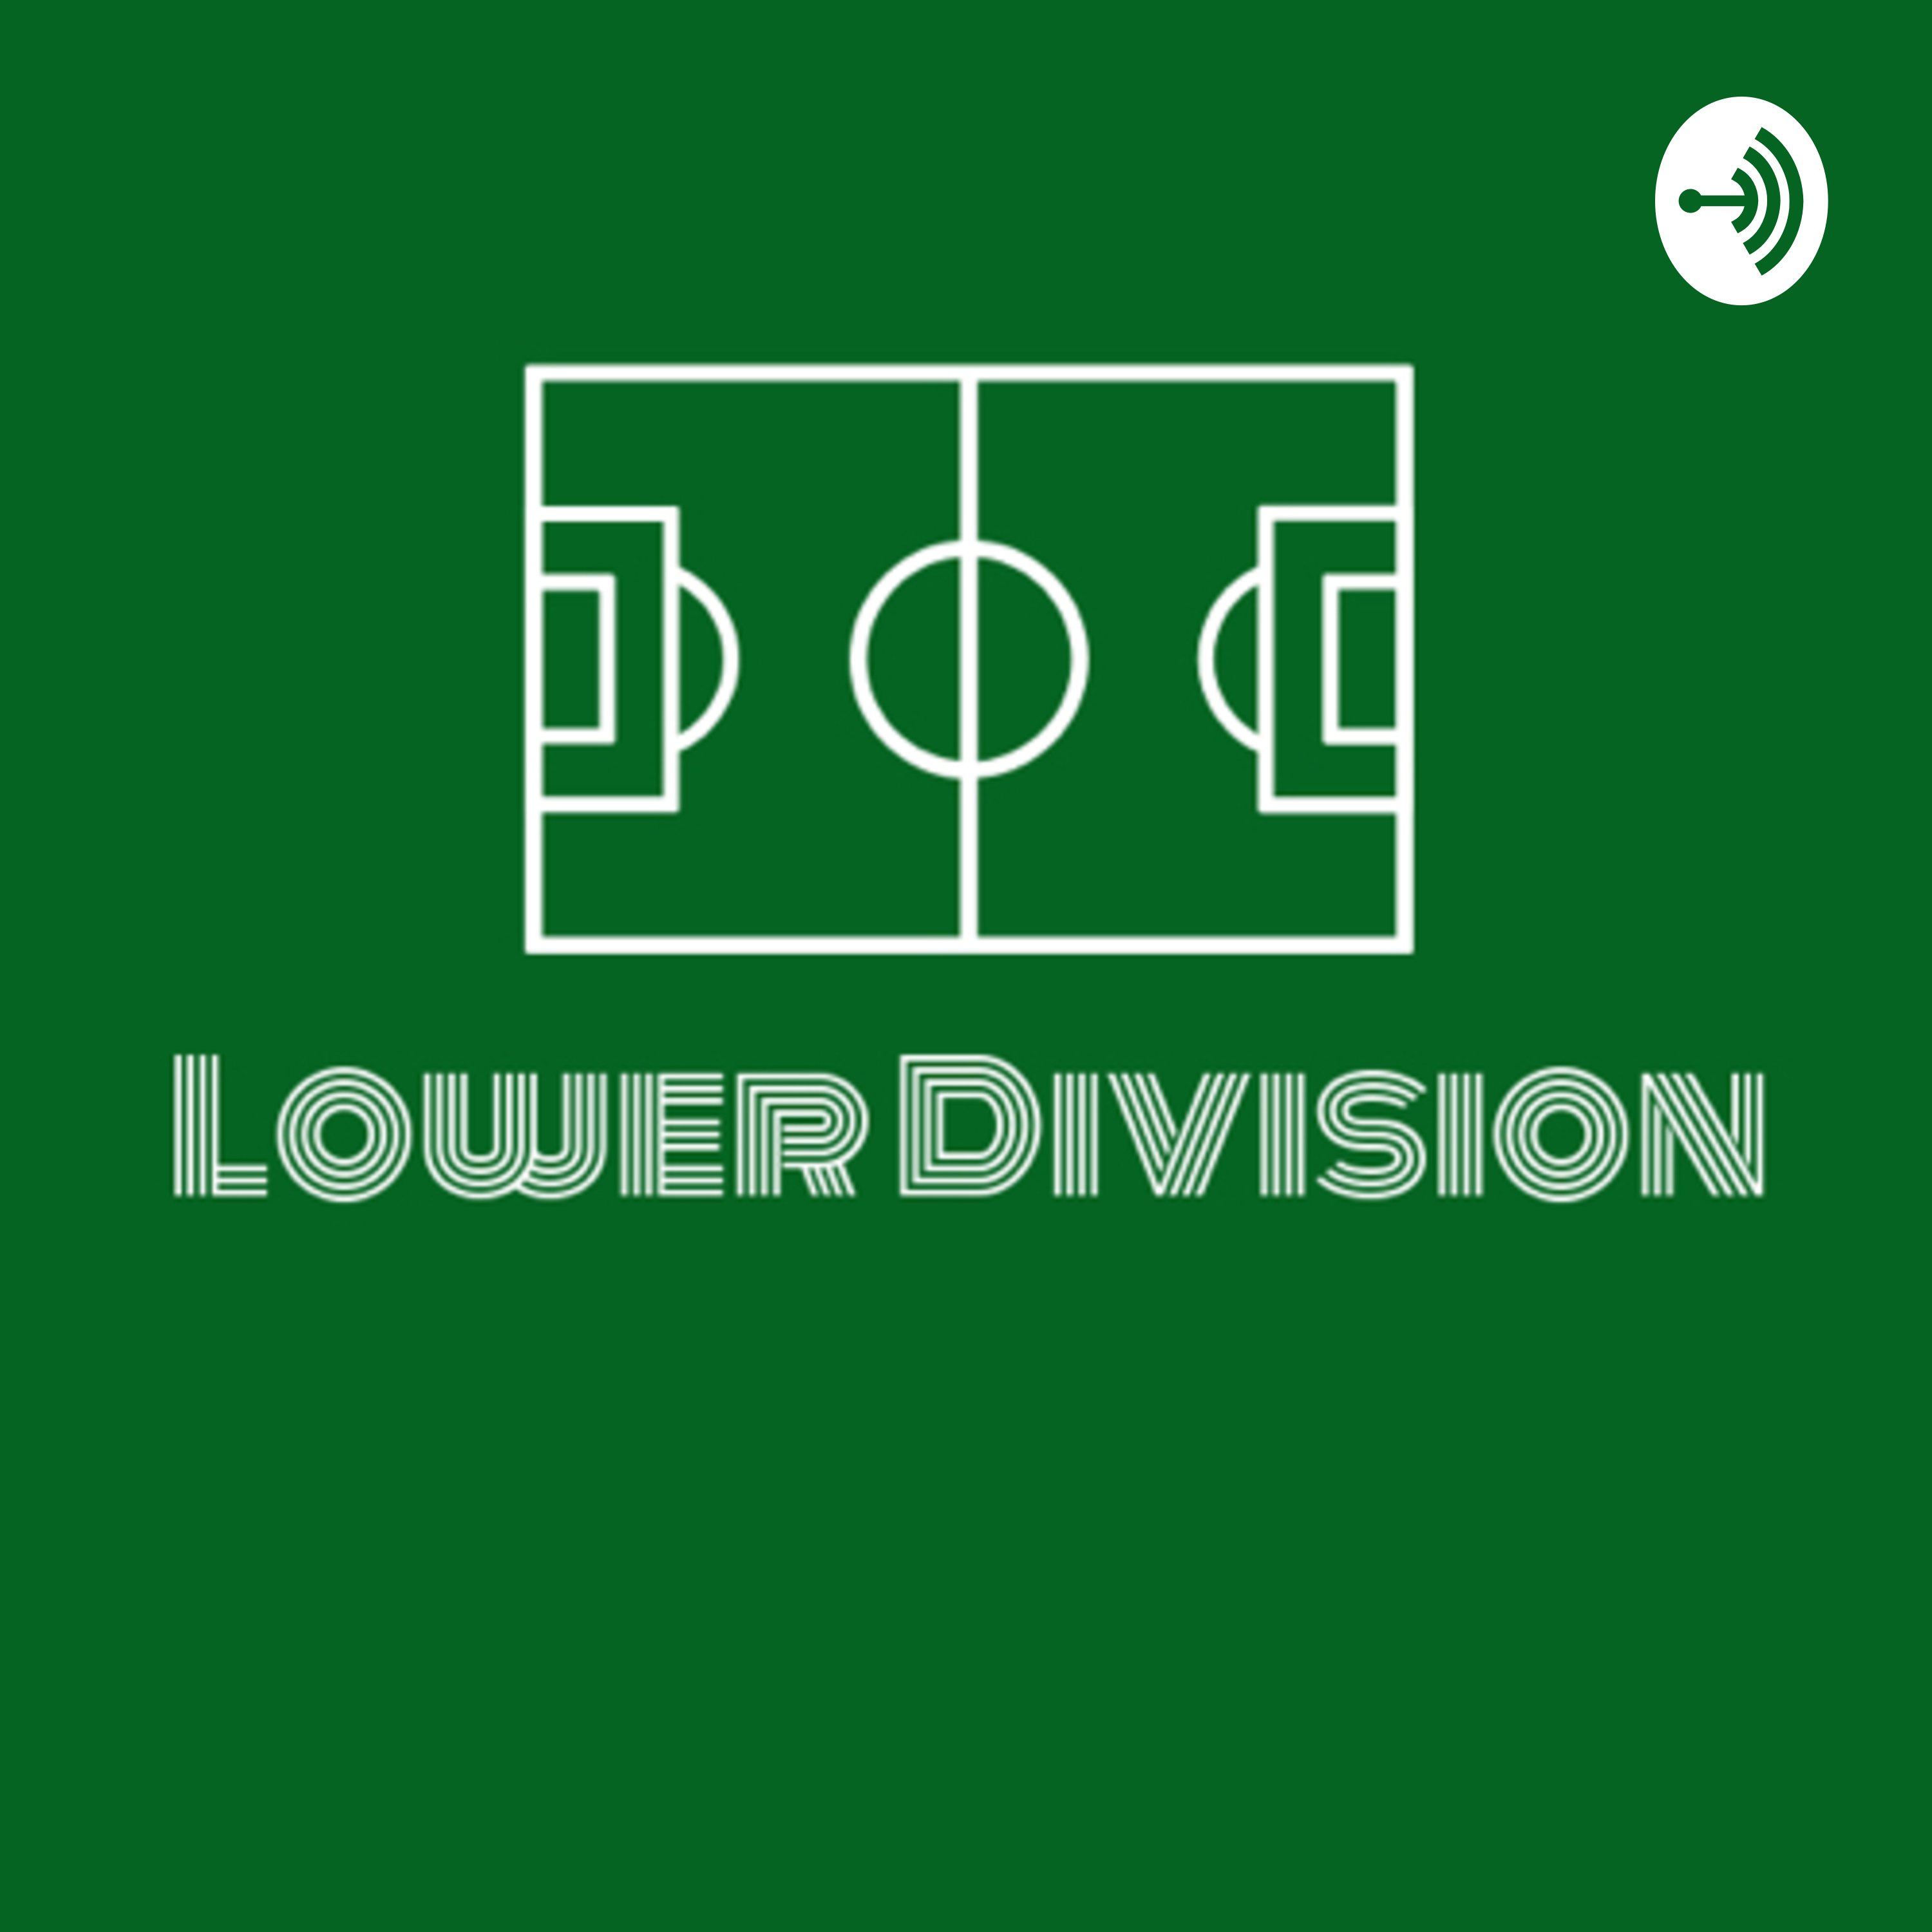 Intro to Lower Division